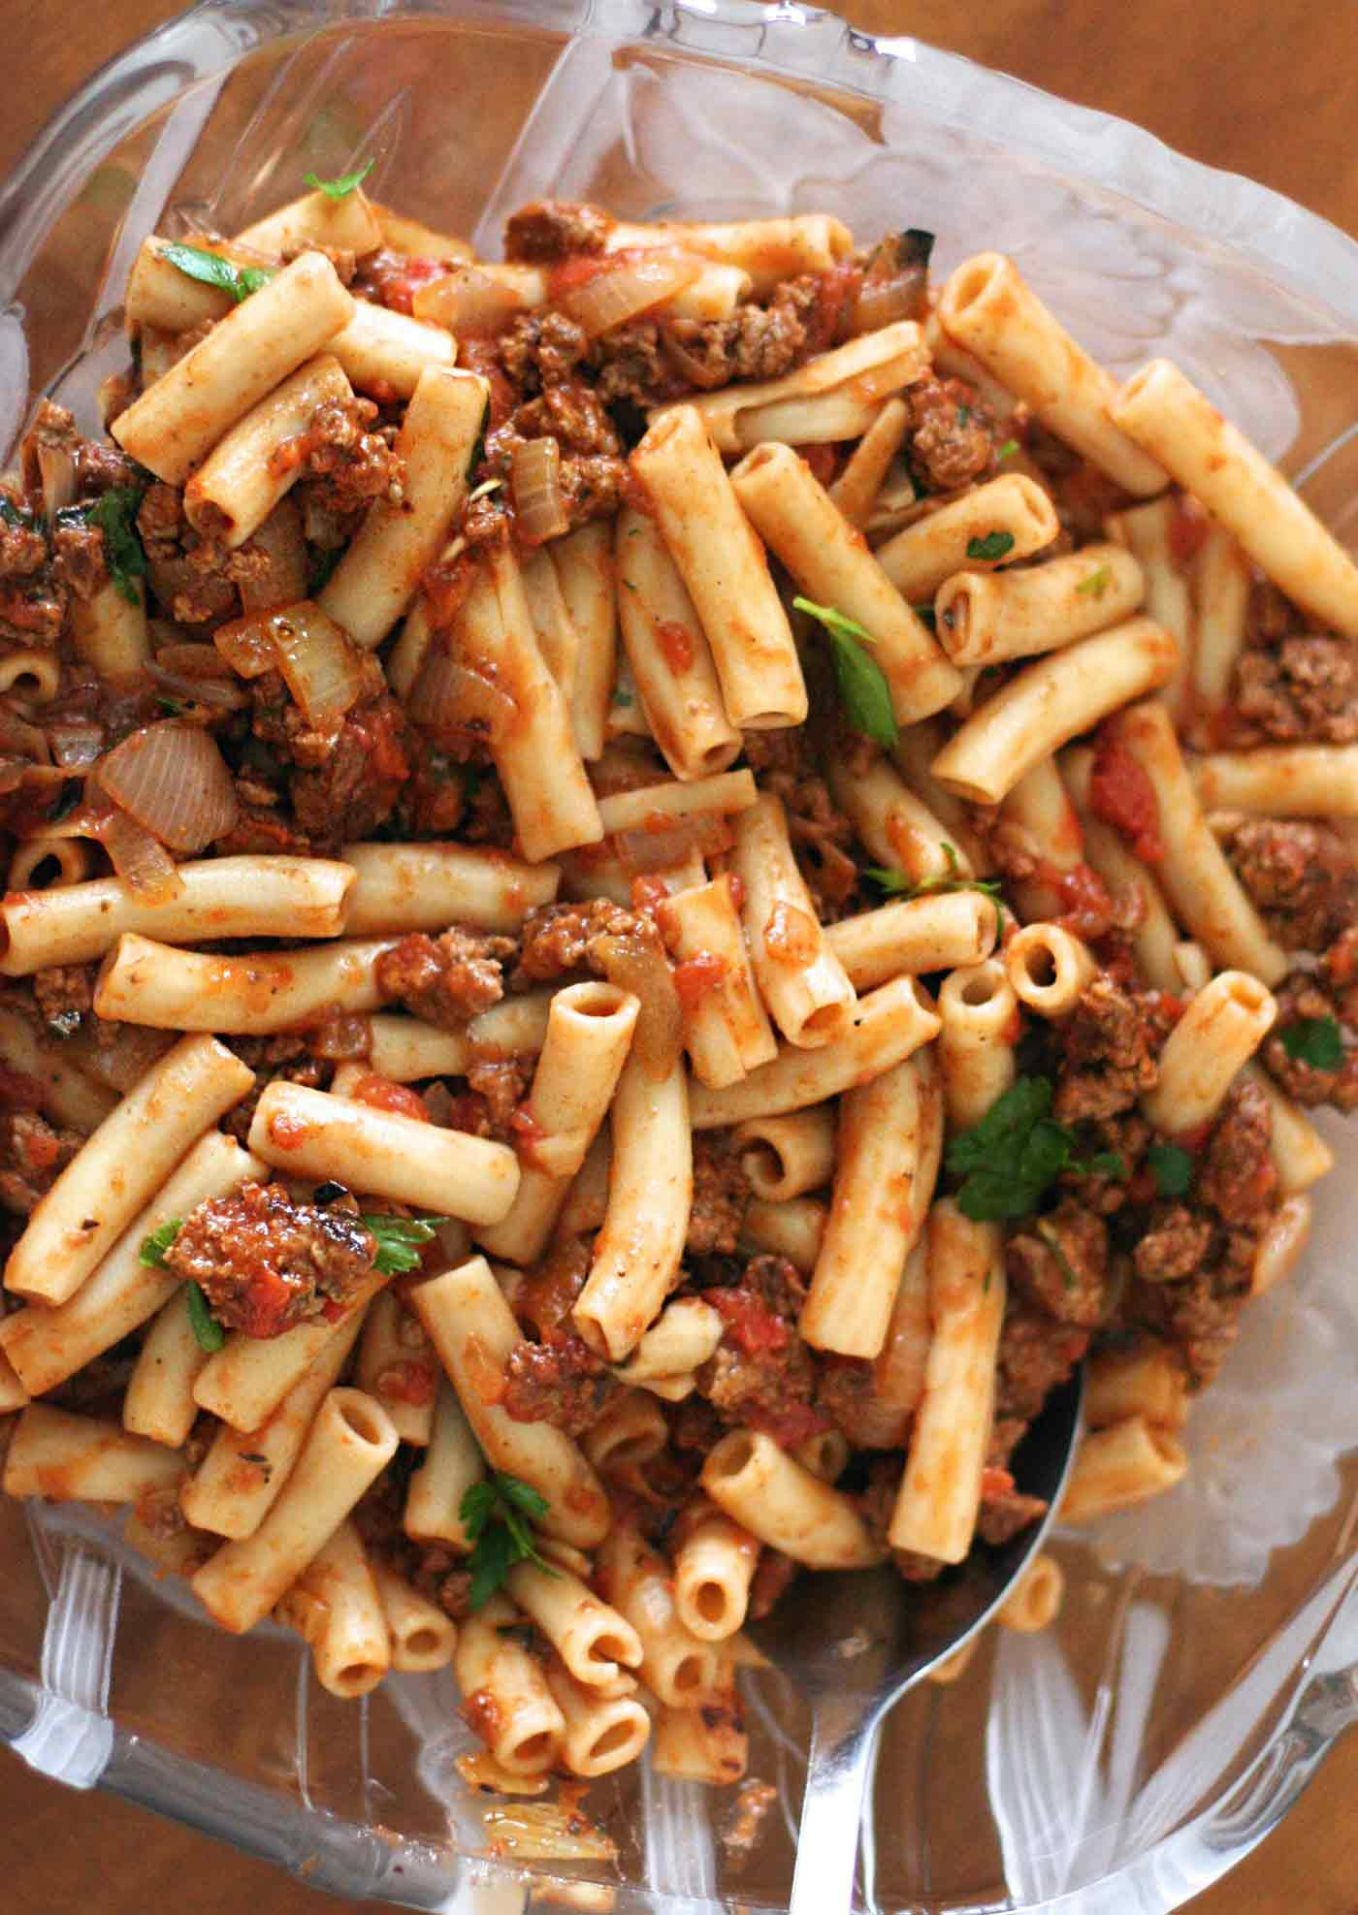 Penne Pasta with Meat Sauce